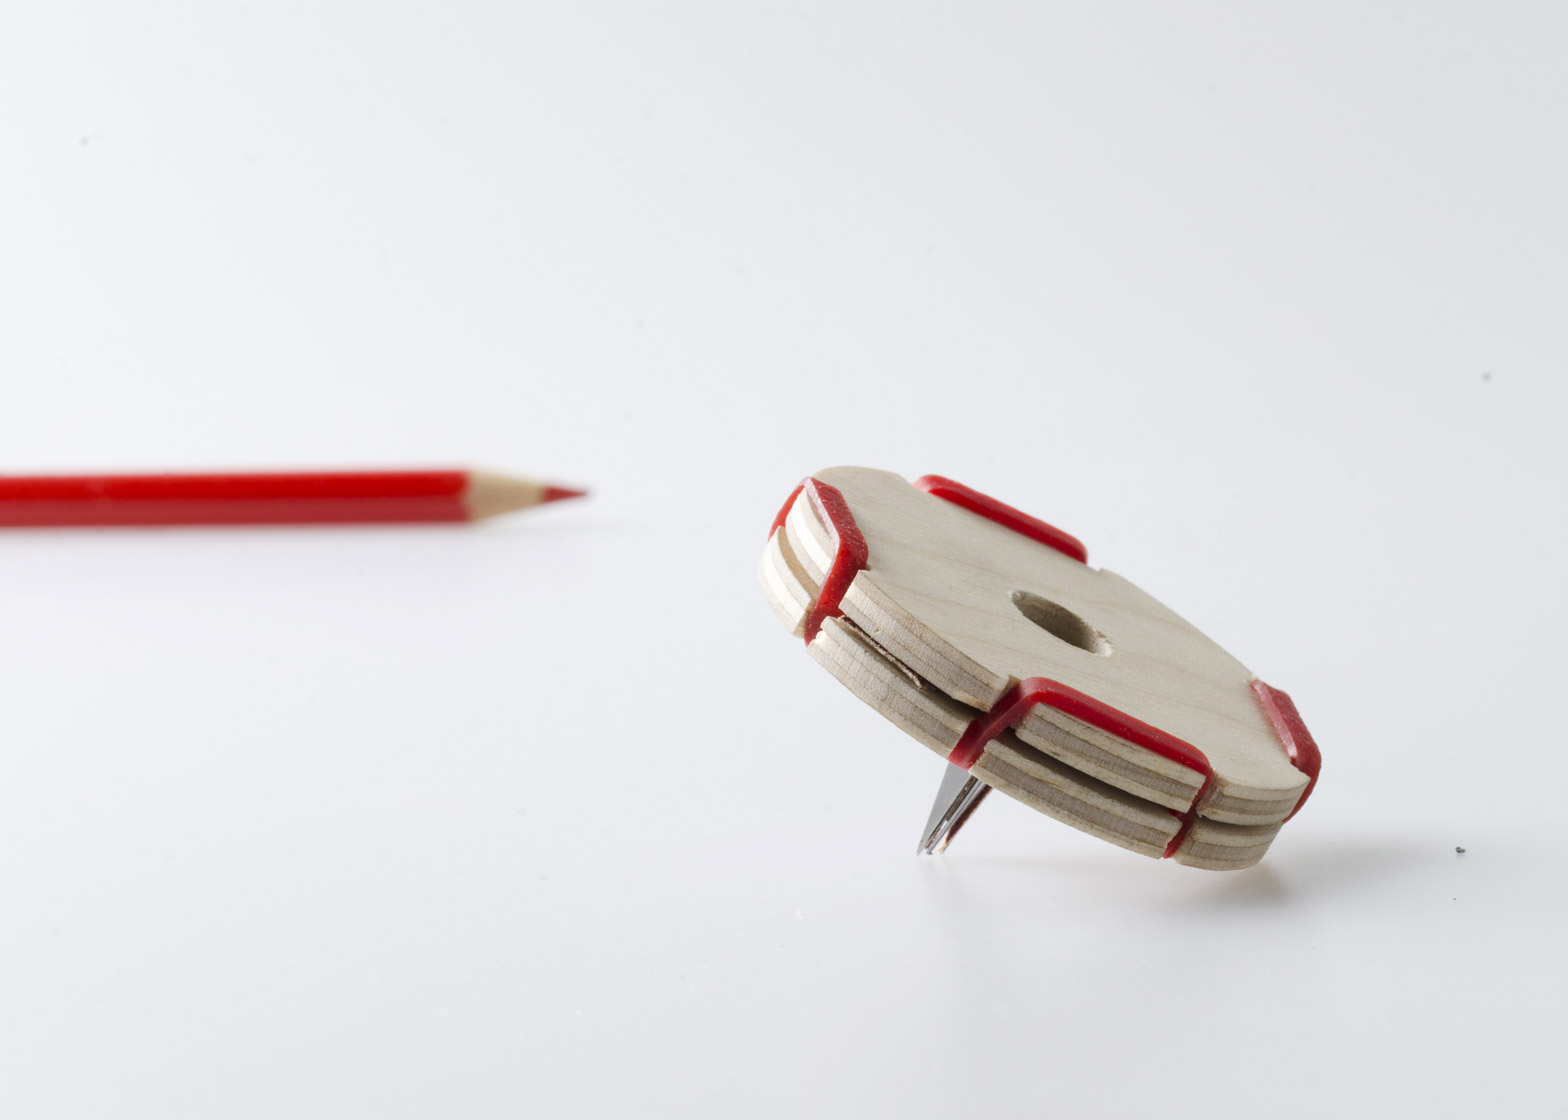 innovative-pencil-sharpeners-hisheji (19)